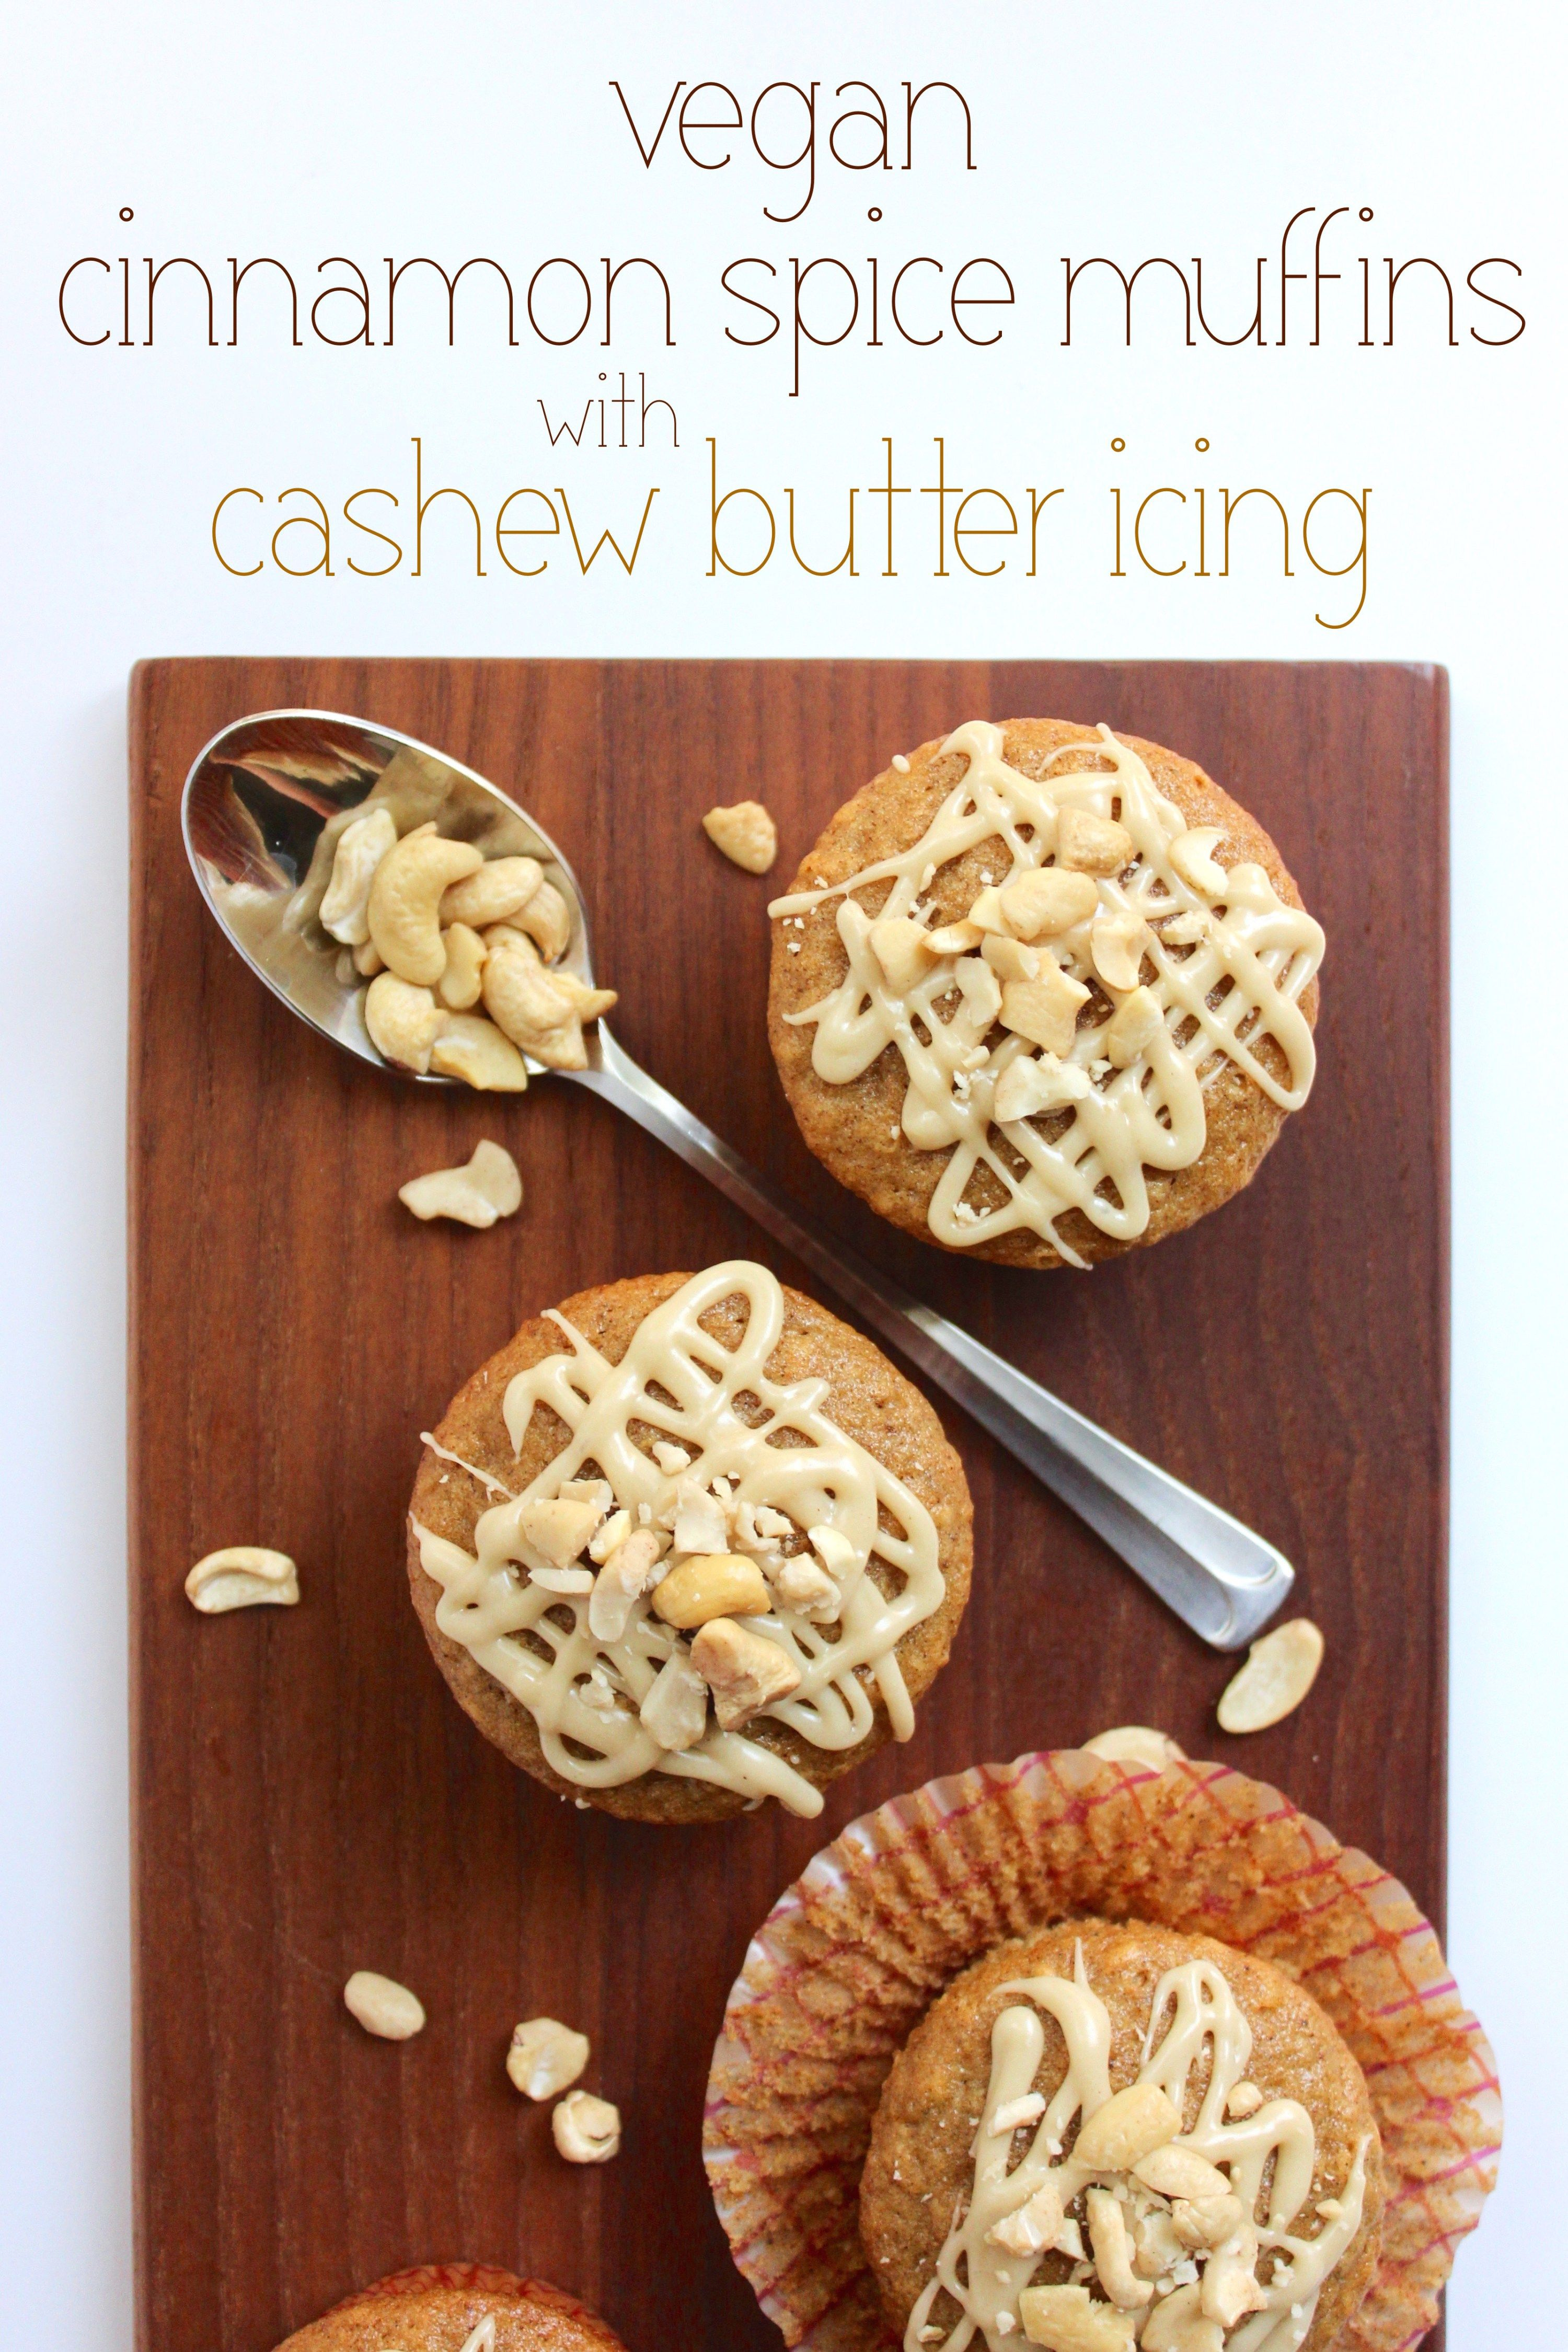 Vegan Cinnamon Spice Muffins with Cashew Butter Ic